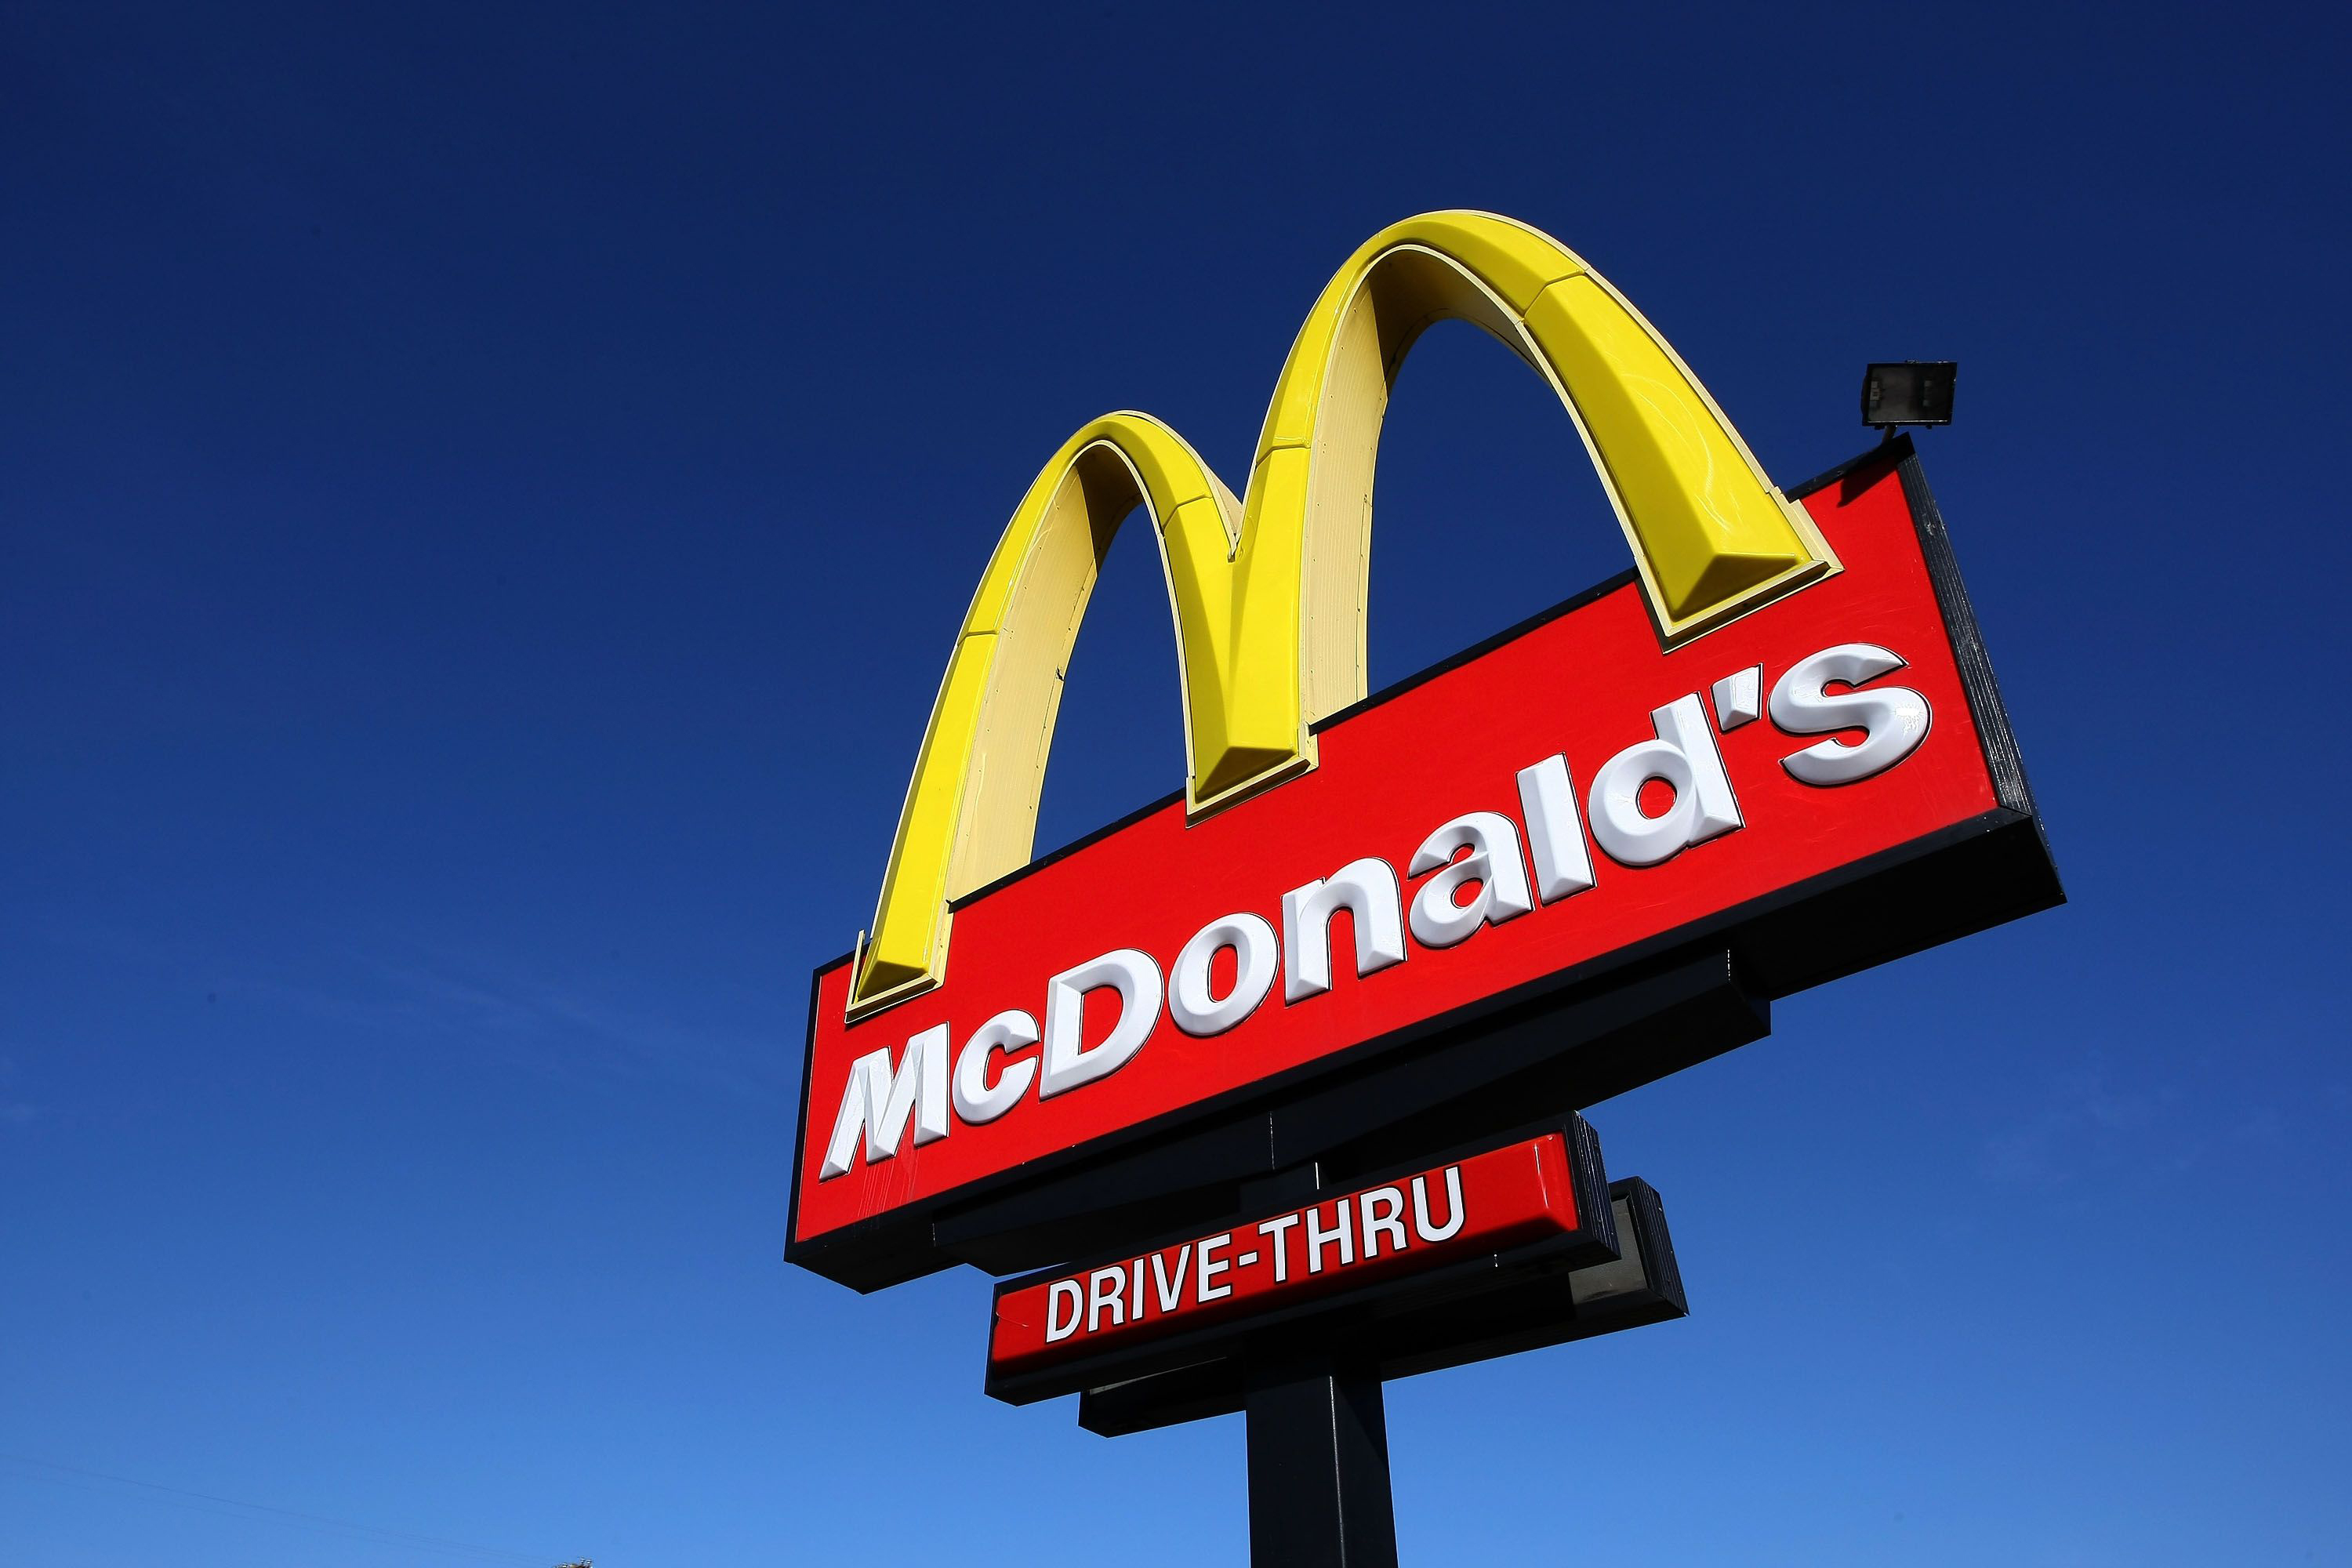 McDonald's Alistair Macrow becomes global CMO in a marketing leadership shakeup